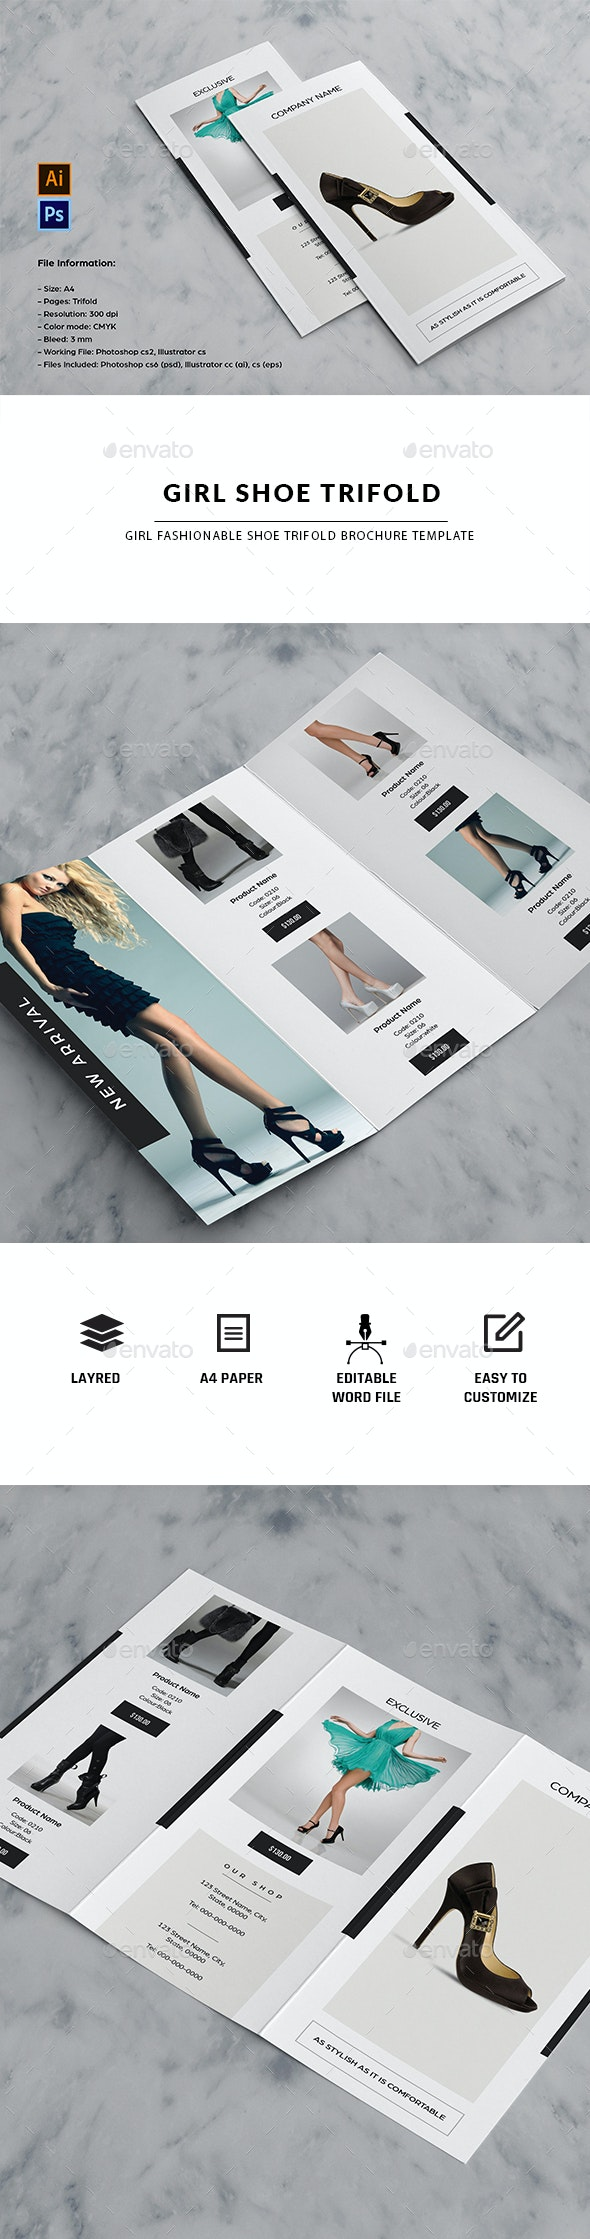 Fashion Product Trifold Brochure - Brochures Print Templates